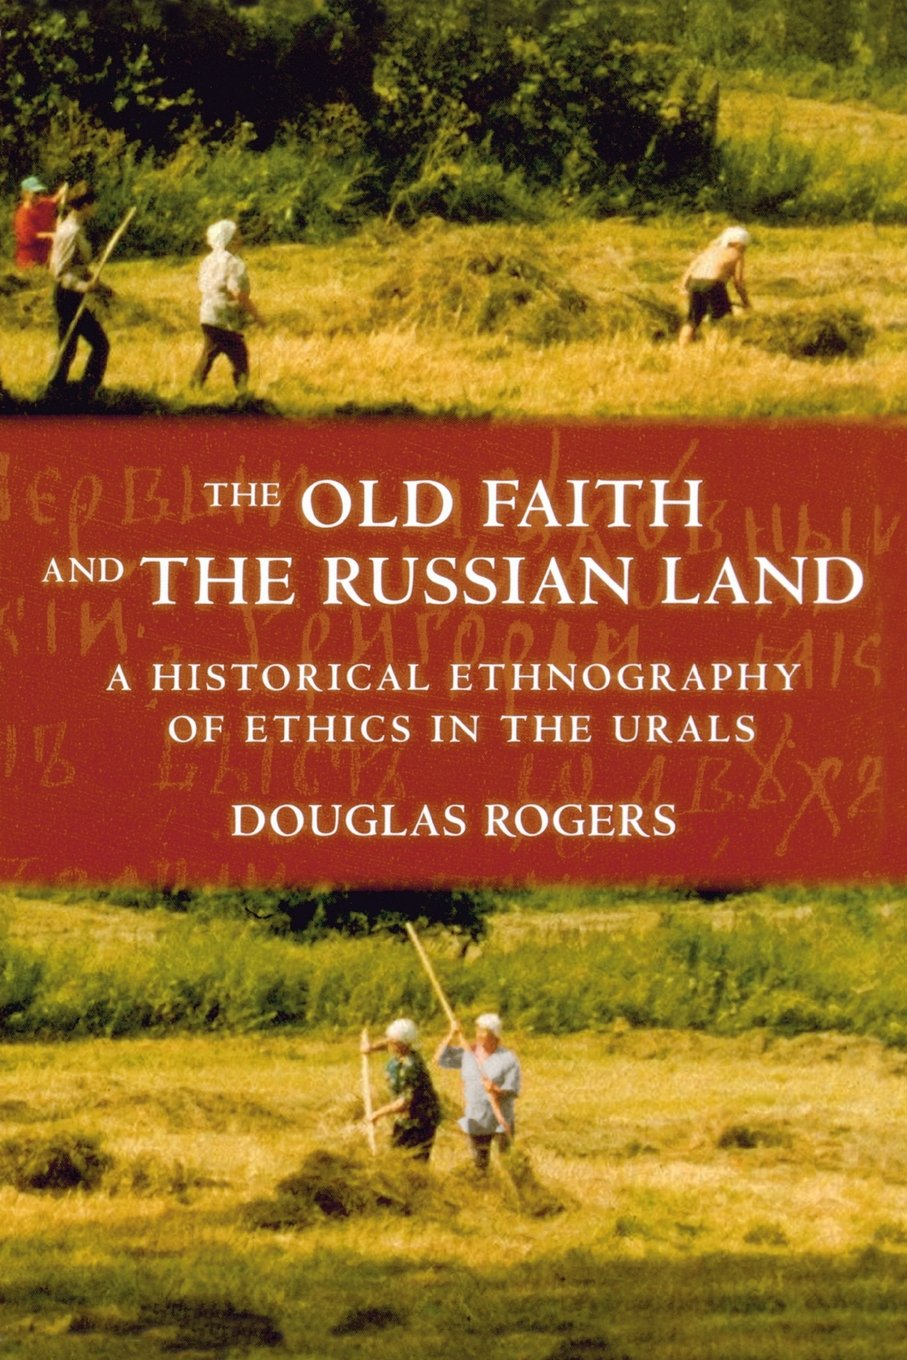 The Old Faith and the Russian Land: A Historical Ethnography of Ethics in the Urals (Culture and Society after Socialism) pdf